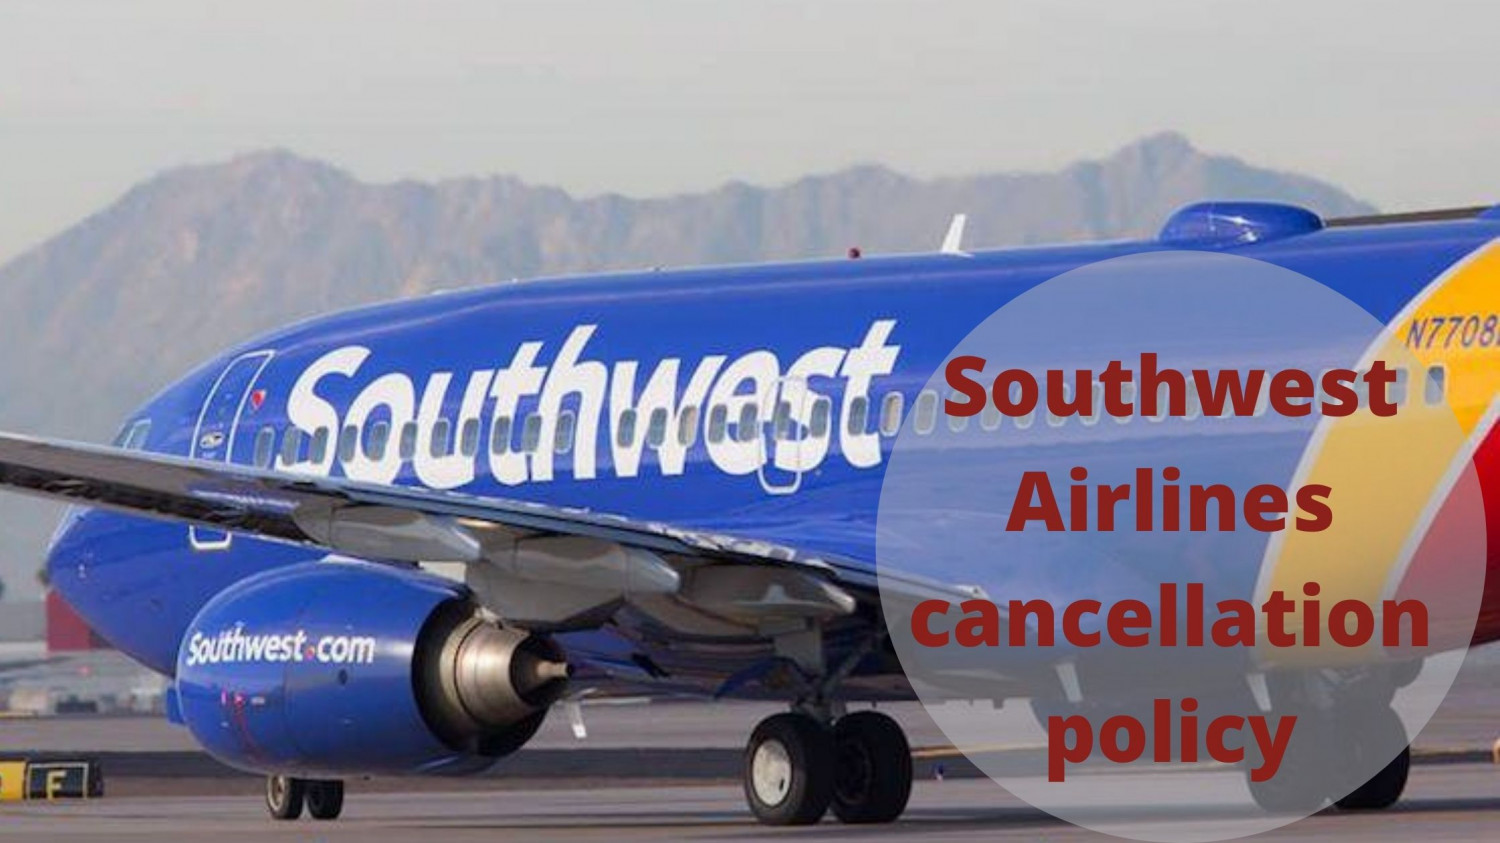 Know! Southwest Airlines cancellation policy Infographic